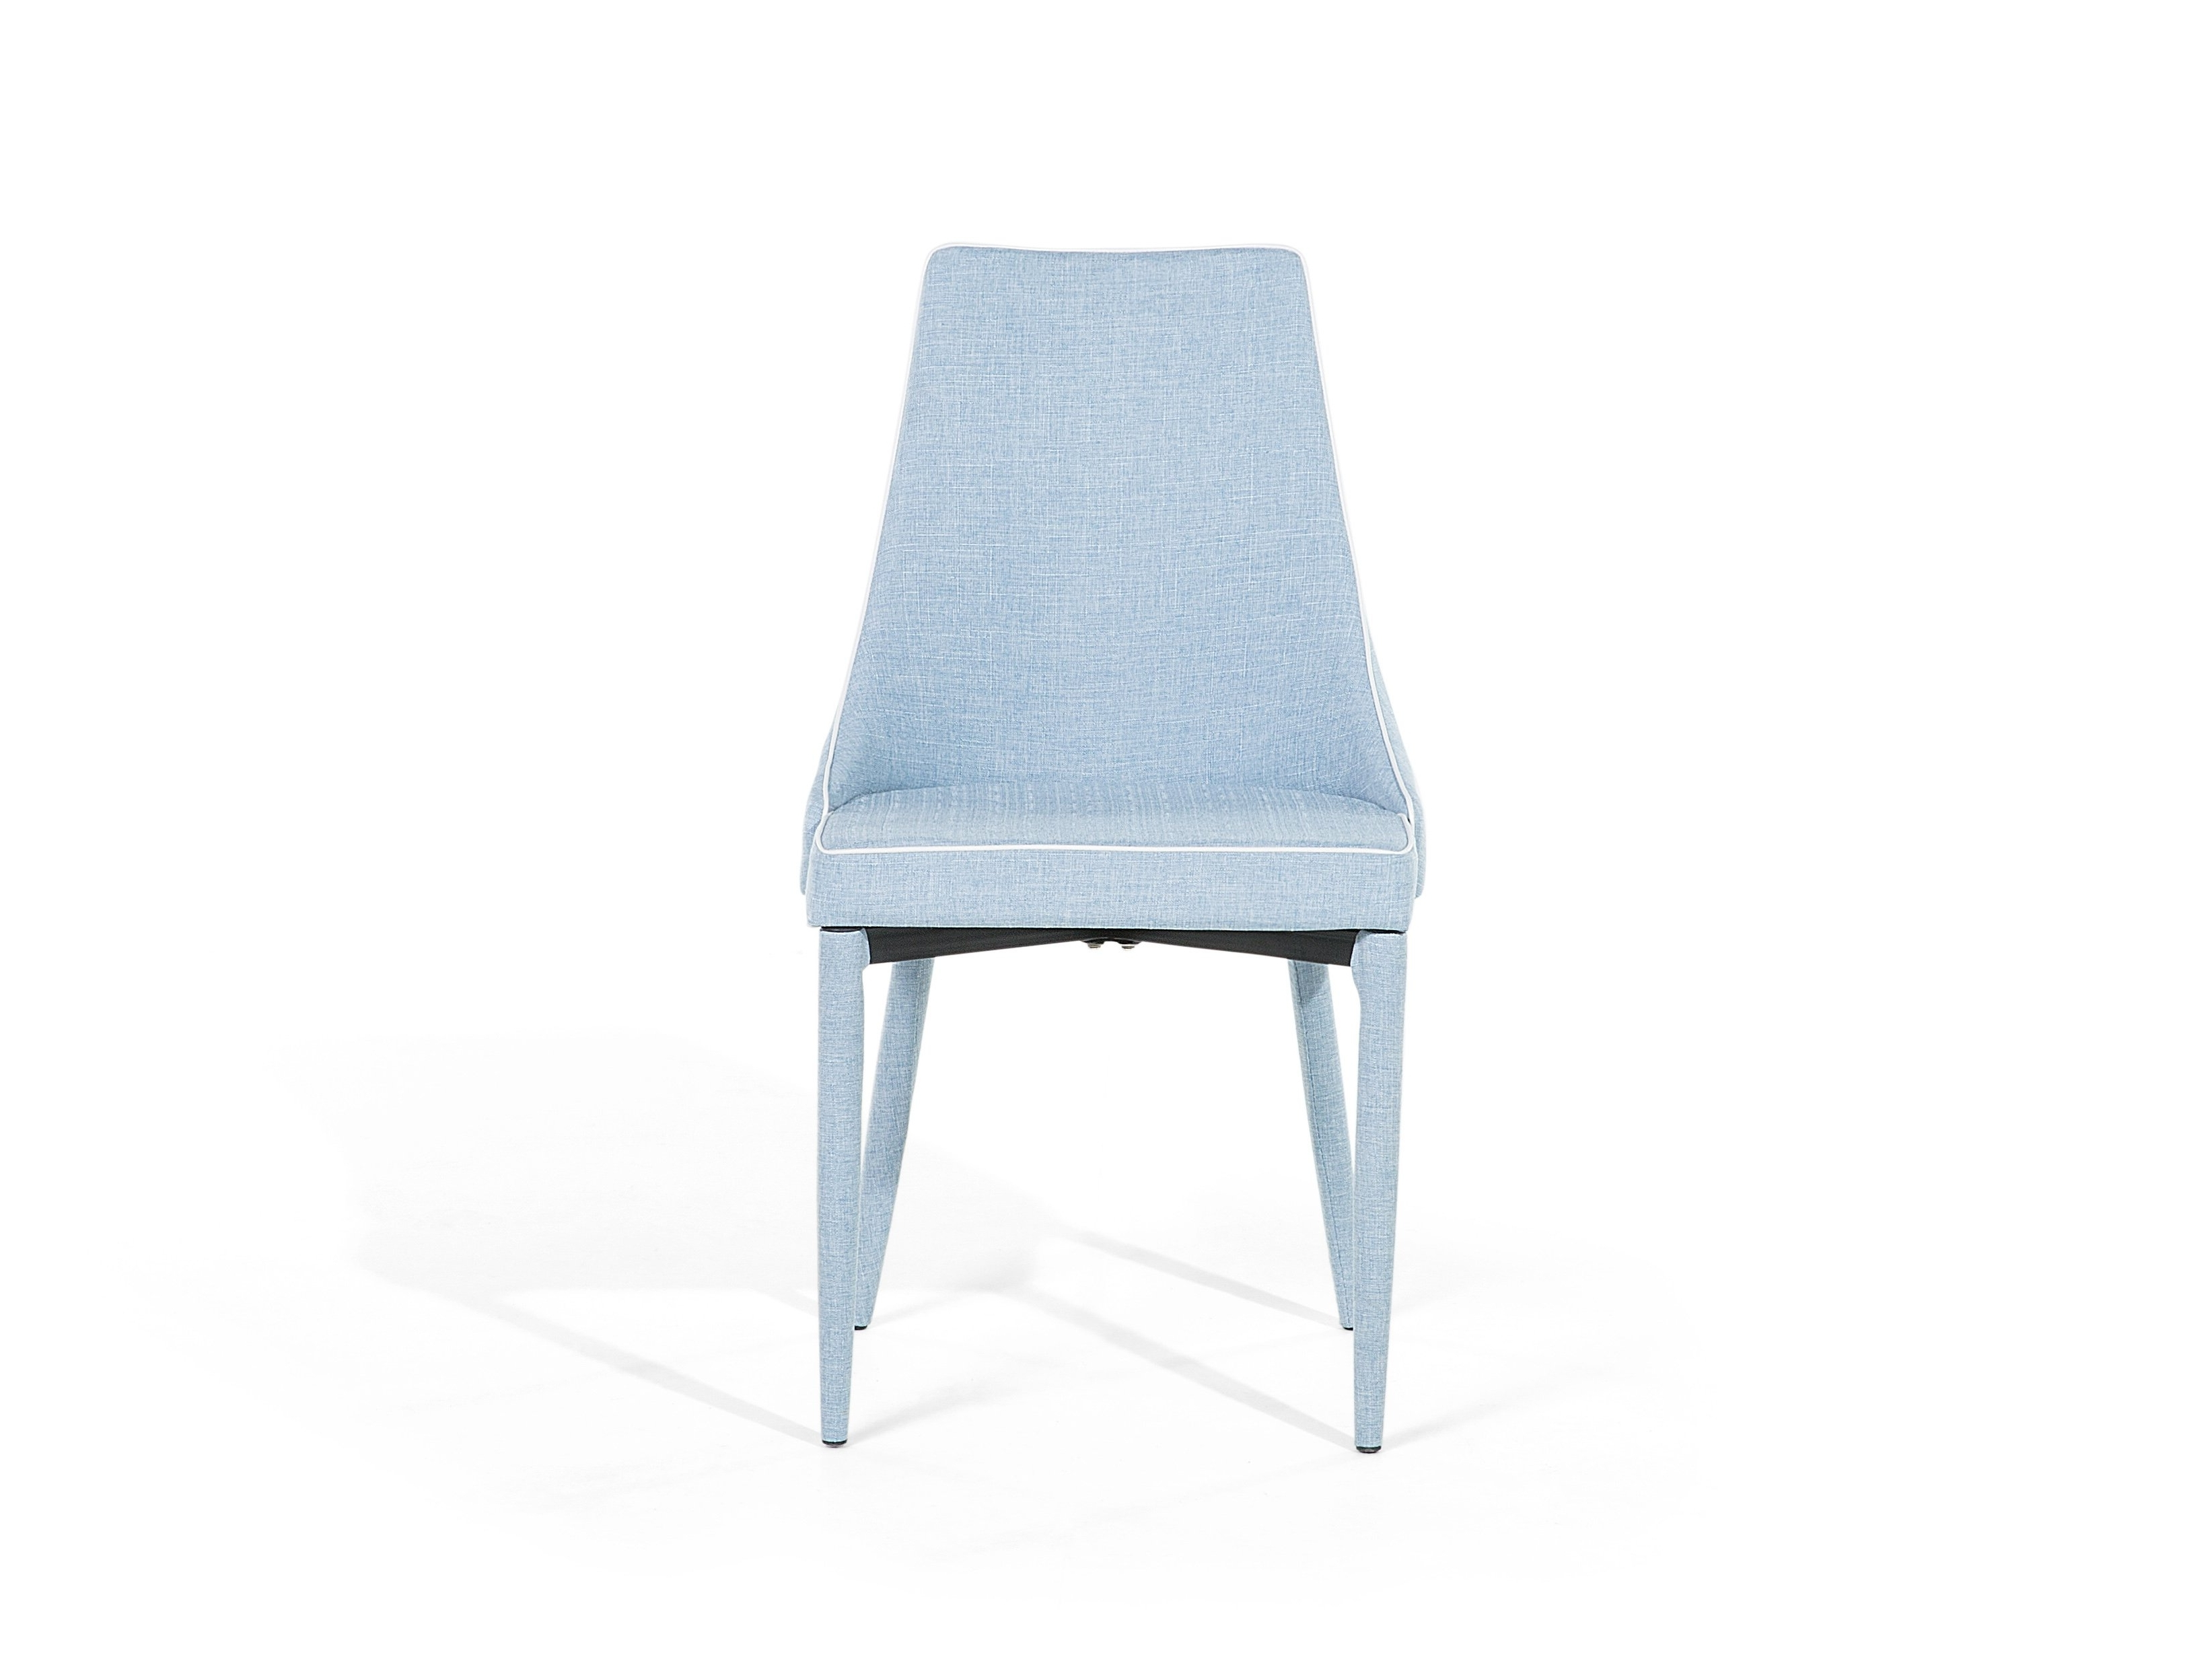 Most Current Chair Dining Chair Tulip Armless Upholstered Light Blue Ebay With Regard To Ebay Dining Chairs (View 14 of 25)